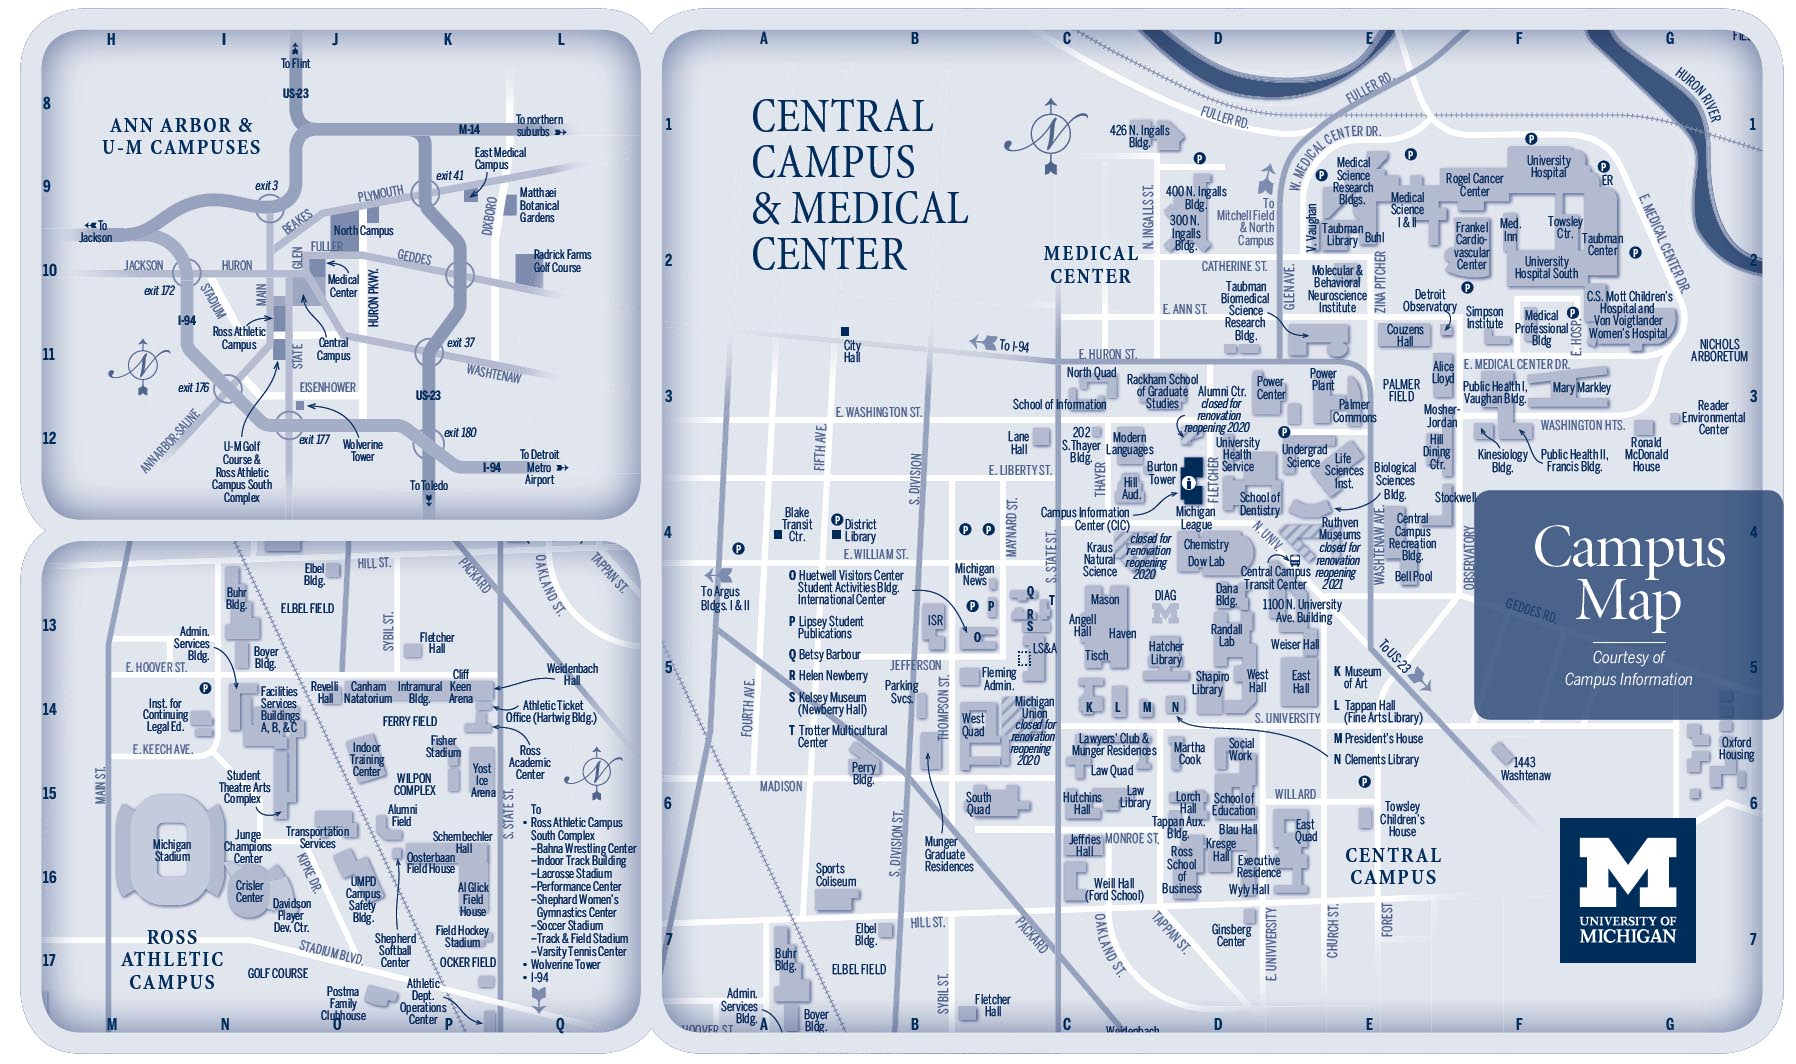 University of Michigan central campus and medical center map